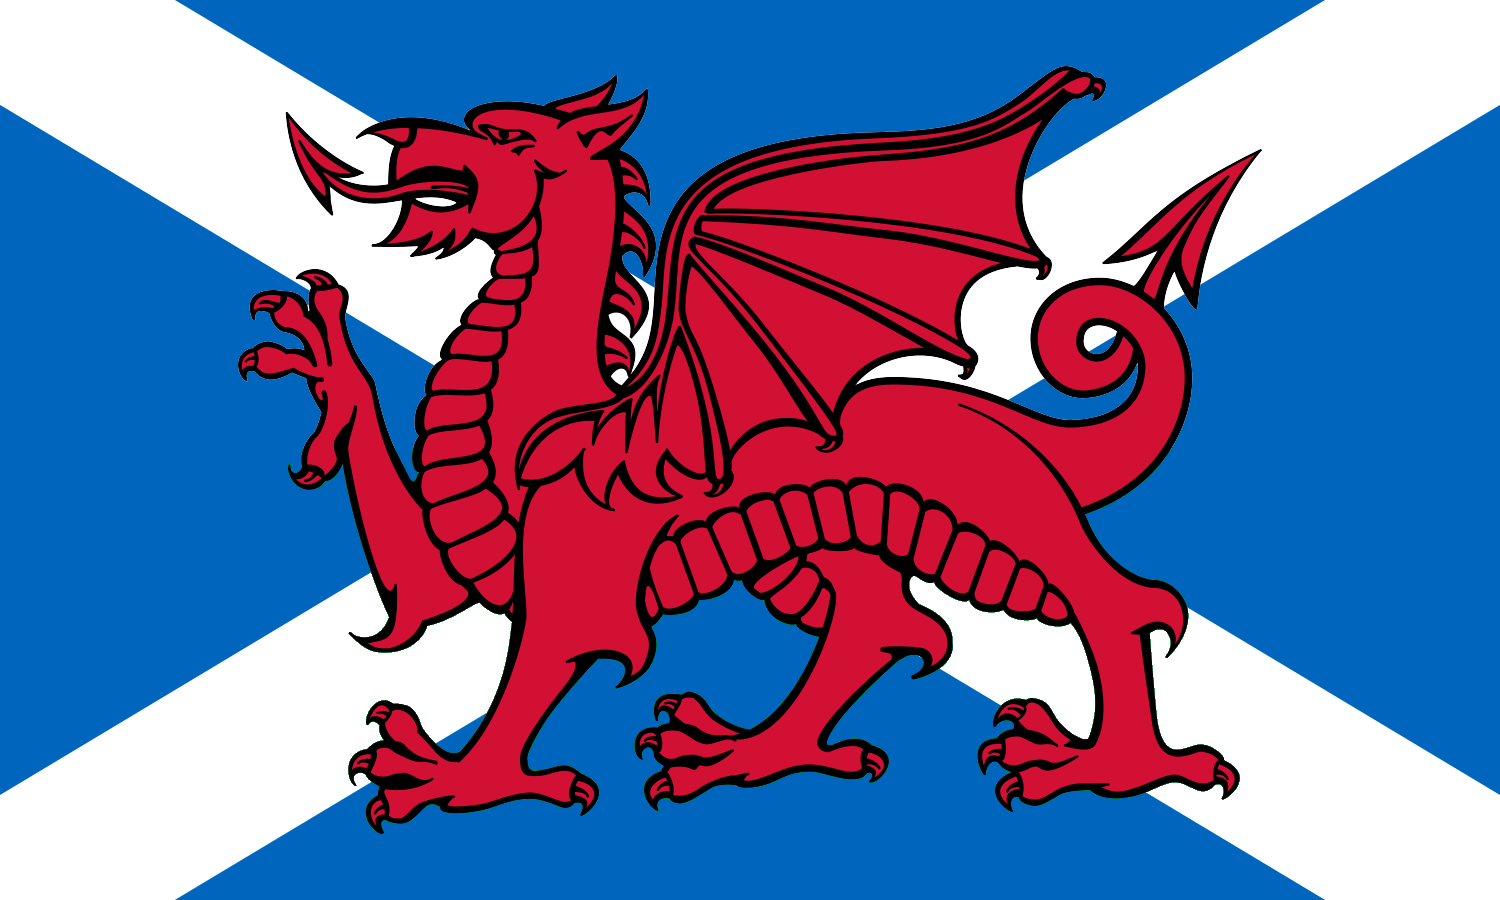 File:Union of Scotland and Wales (Welsh and Scottish Baner.